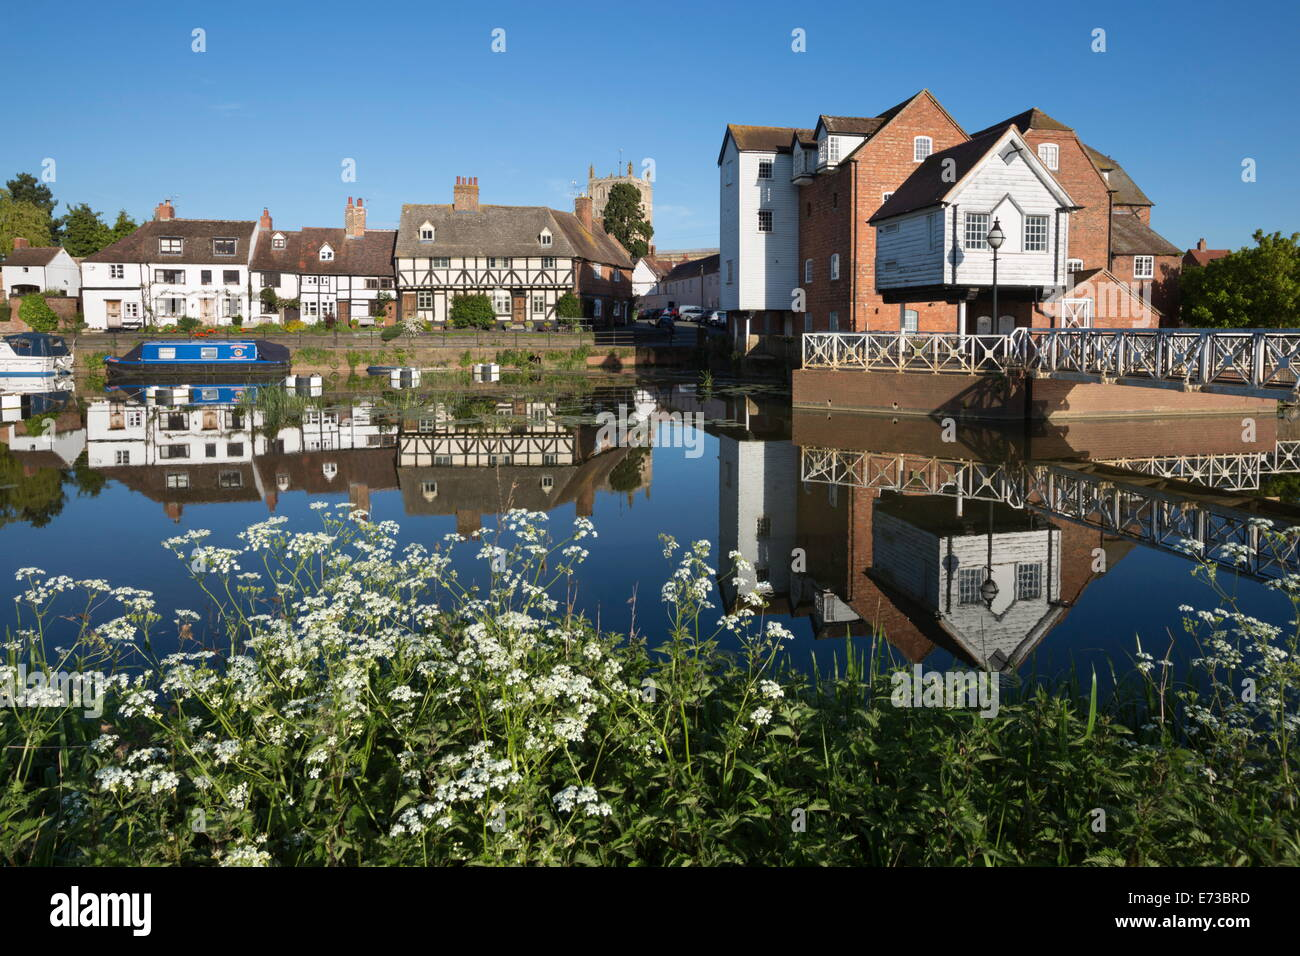 Abbey Mill and Tewkesbury Abbey on the River Avon, Tewkesbury, Gloucestershire, England, United Kingdom, Europe - Stock Image